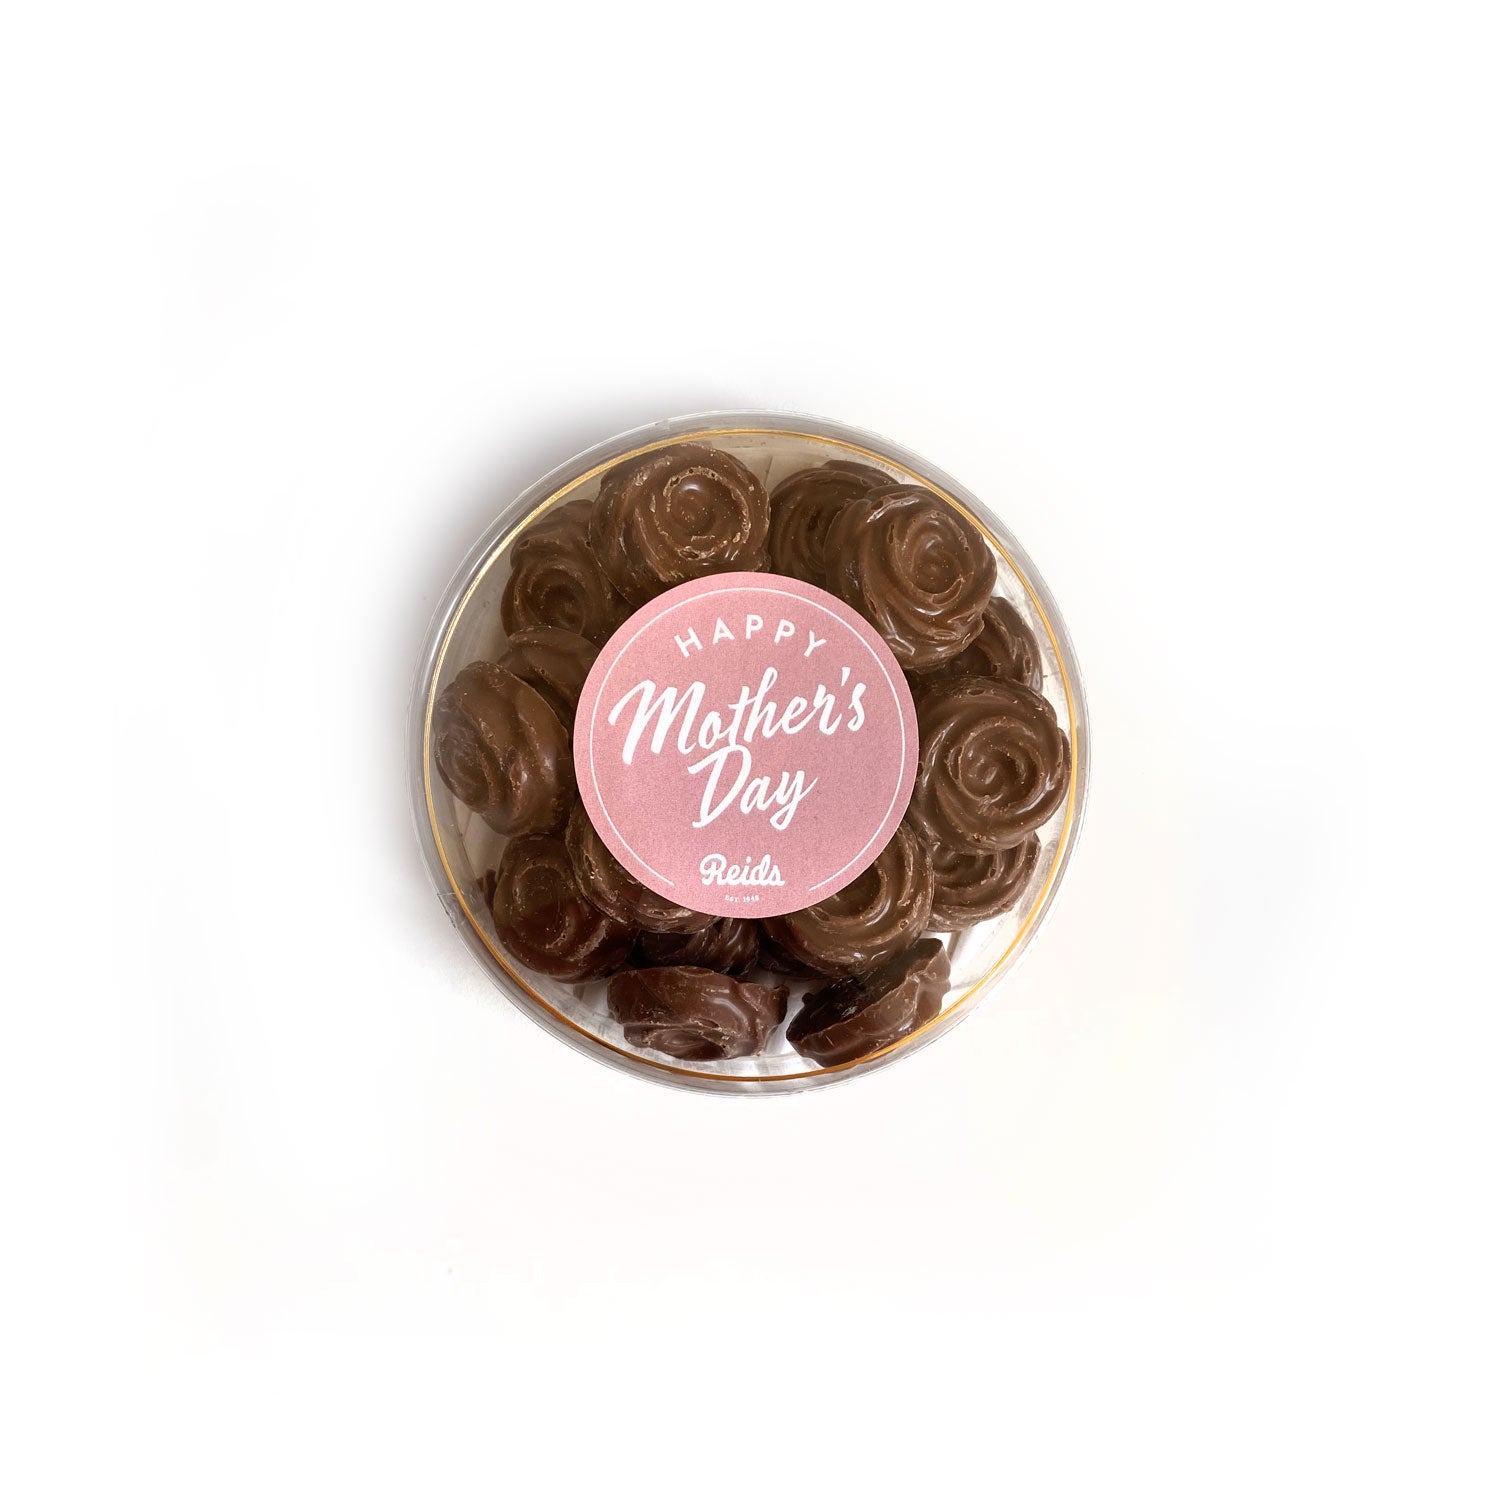 115g of milk chocolate rosebuds with a happy mother's day sticker